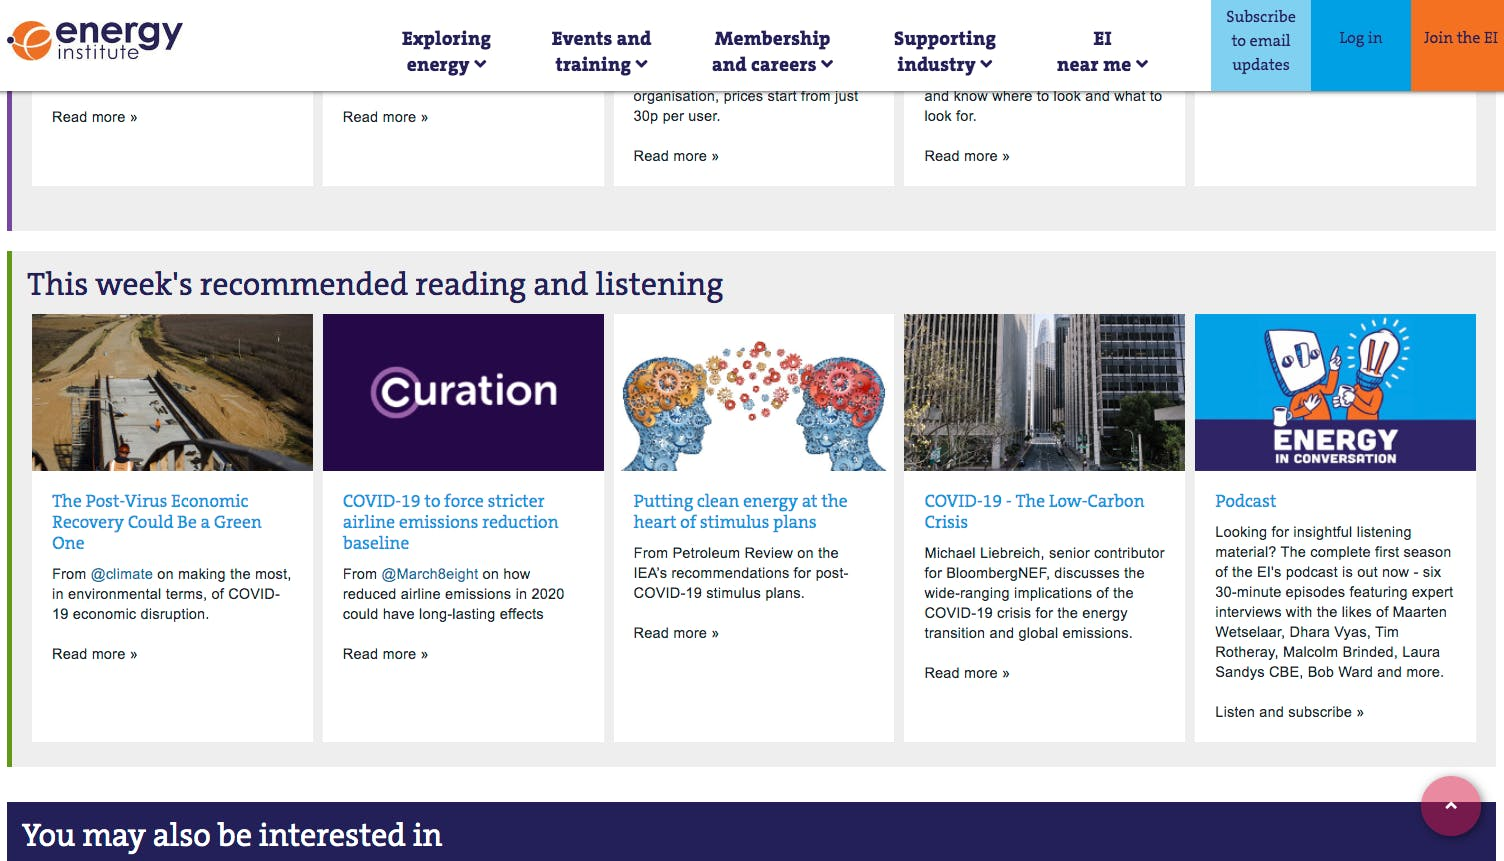 Curation features in Energy Institute's weekly recommended COVID-19 reading